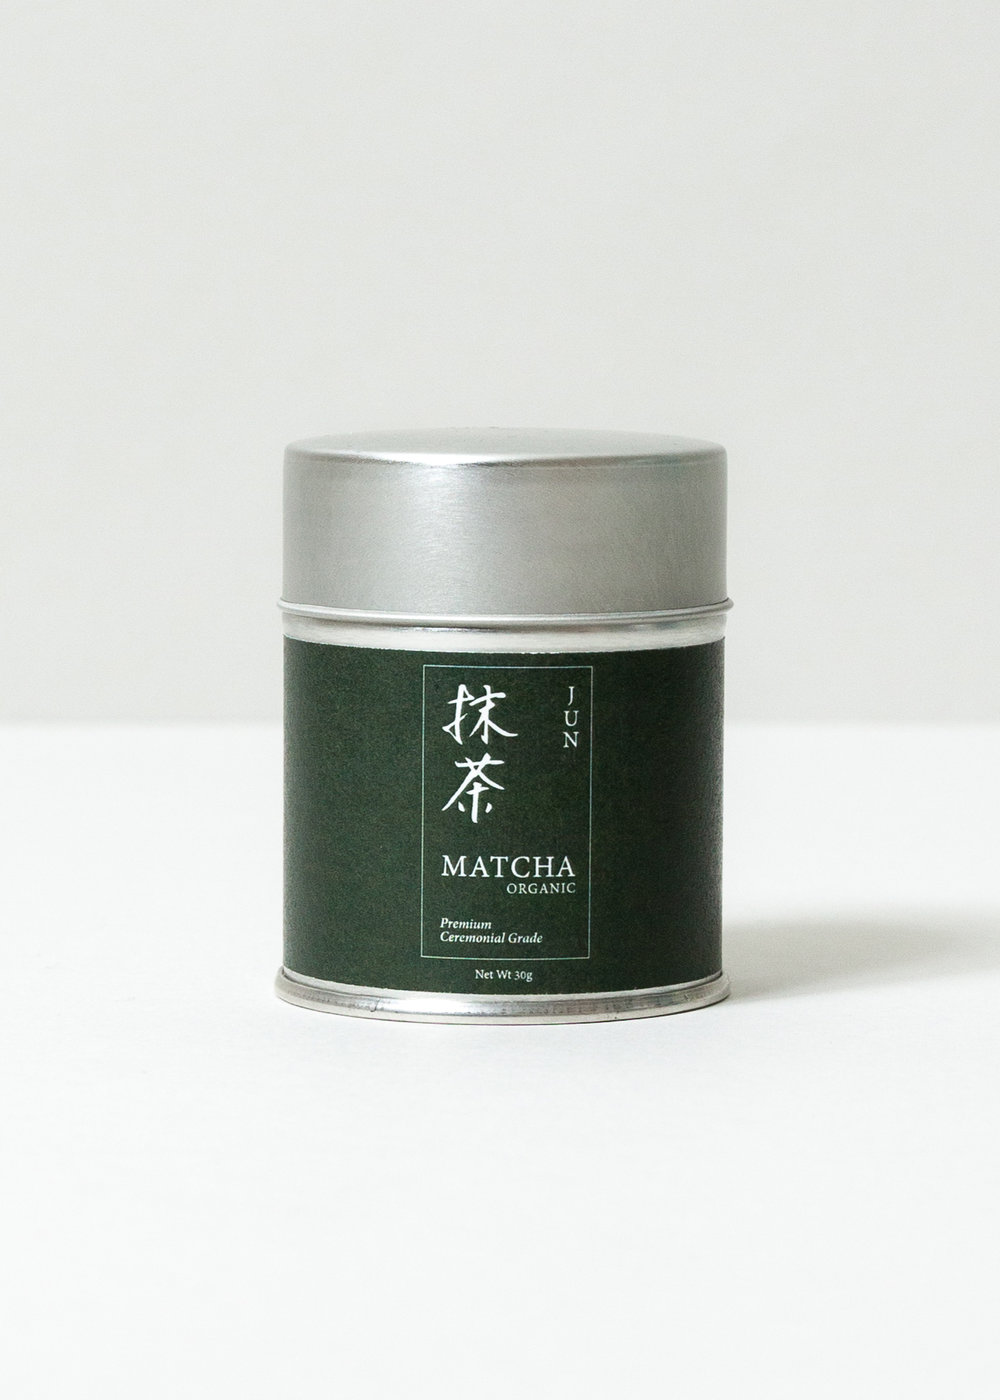 Morihata Organic Matcha Packaging design for a collection of three organic matcha teas